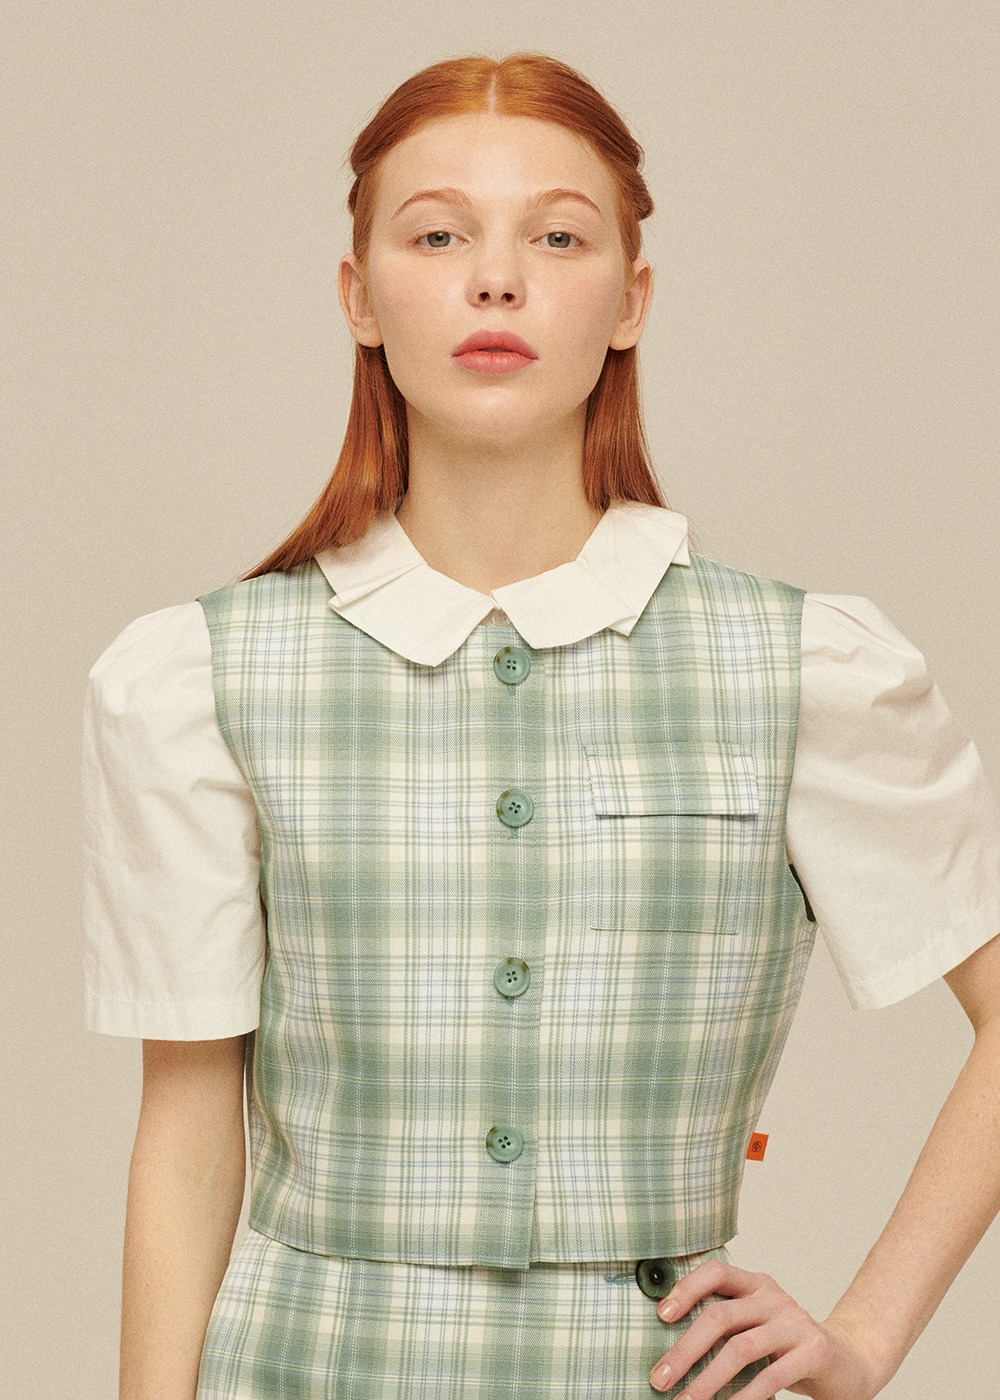 Pocket Vest [PASTEL GREEN CHECK]Pocket Vest [PASTEL GREEN CHECK]자체브랜드